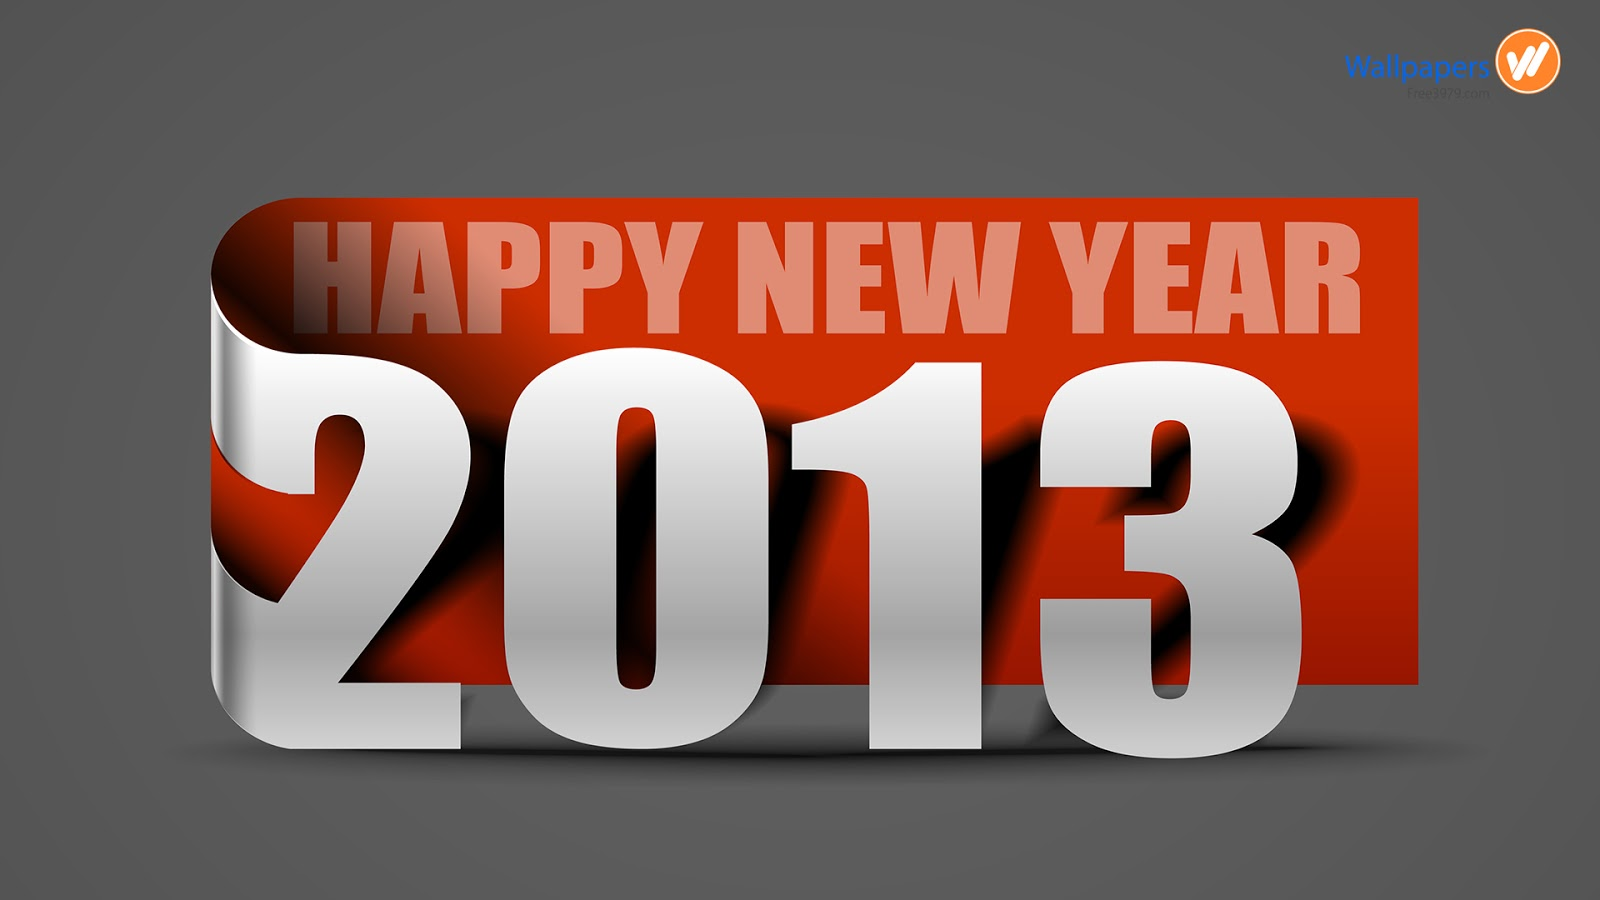 New Happy New Year 2013 wallpaper